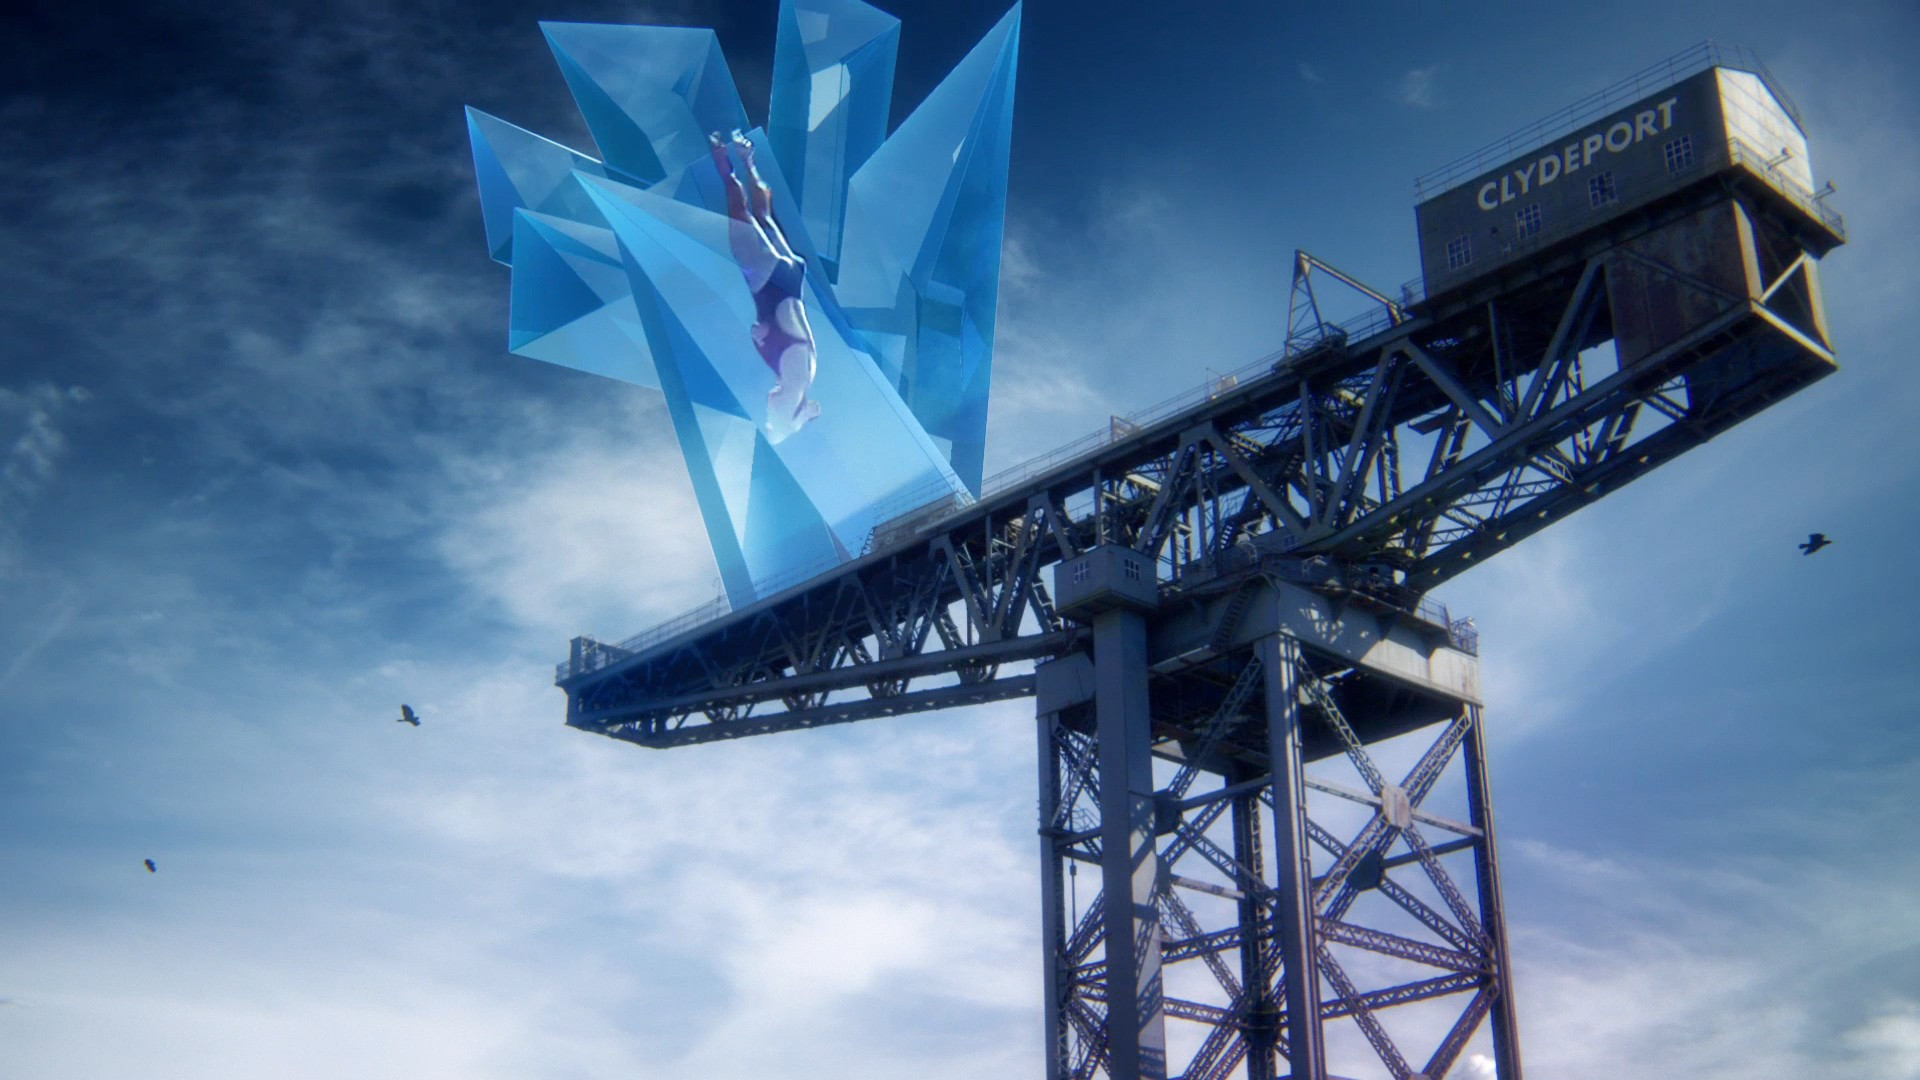 The official opening title sequence for the inaugural European Championships was unveiled ©European Championships